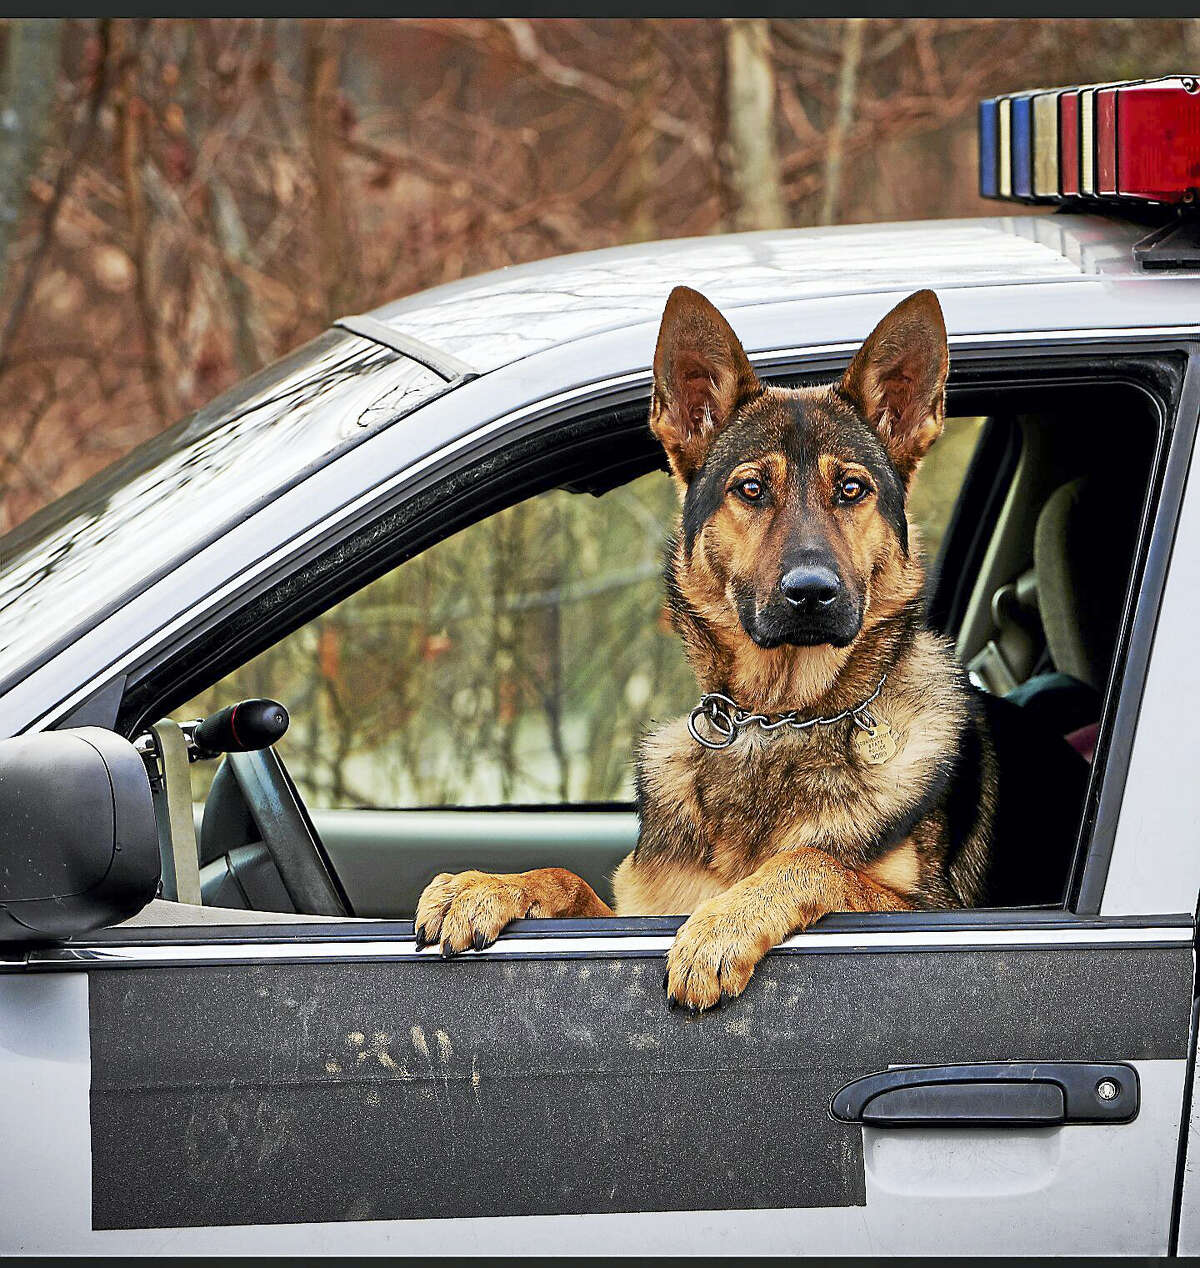 K-9 Tobi has been assigned to Trooper Bruce Lachance since September 2015 and is working at Troop L in Litchfield.